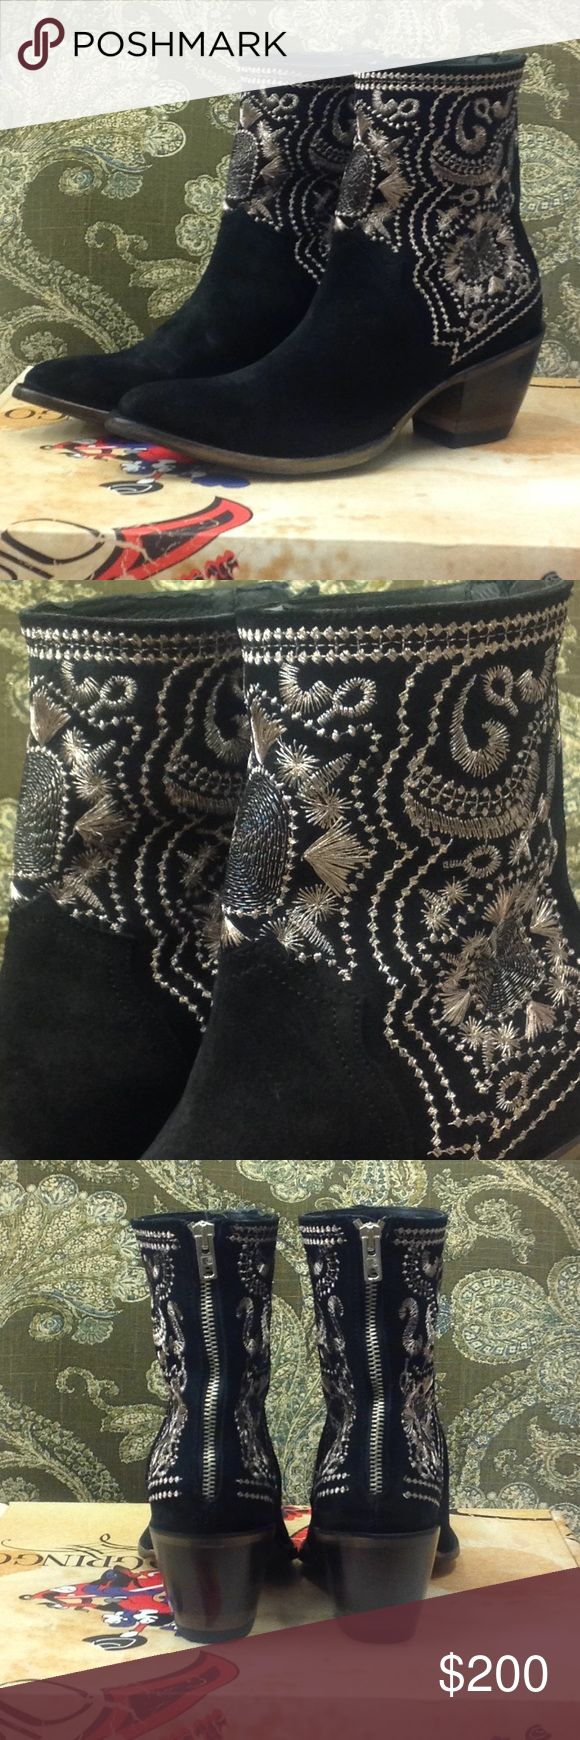 Old Gringo Yippee Ki Yay brand booties Beautiful black suede booties with metallic silver detailed embroidery. These boots are new with tags, all original stuffing and boxes. The perfect embroidered bootie to dress up your favorite jeans or dress. Old Gringo Shoes Ankle Boots & Booties